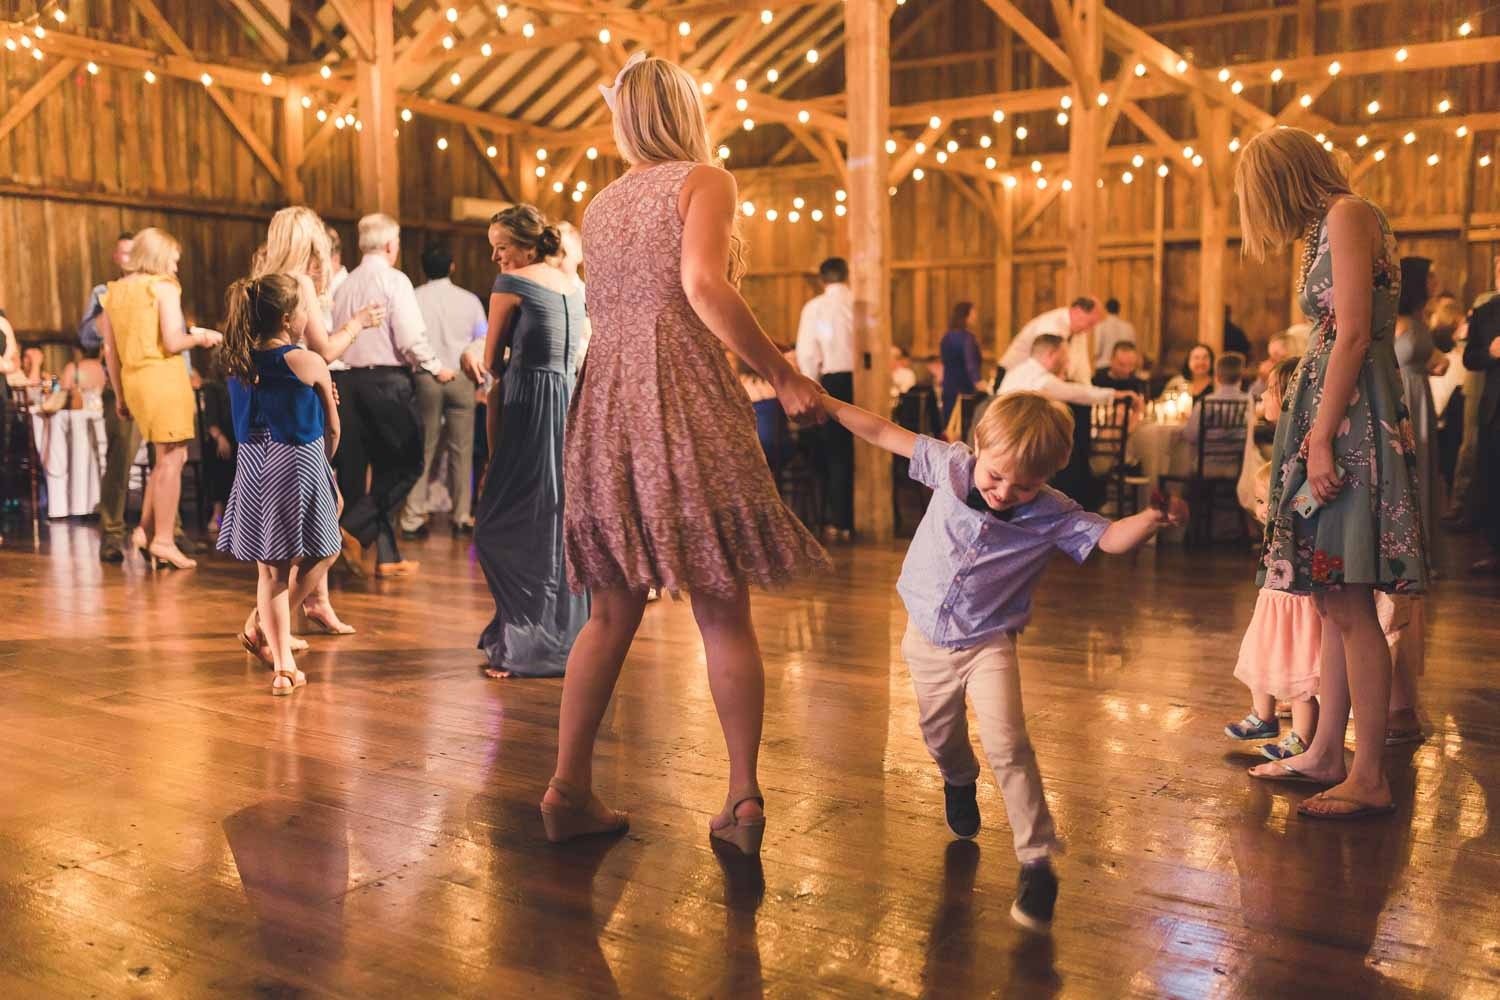 Child dancing around his mother at wedding reception